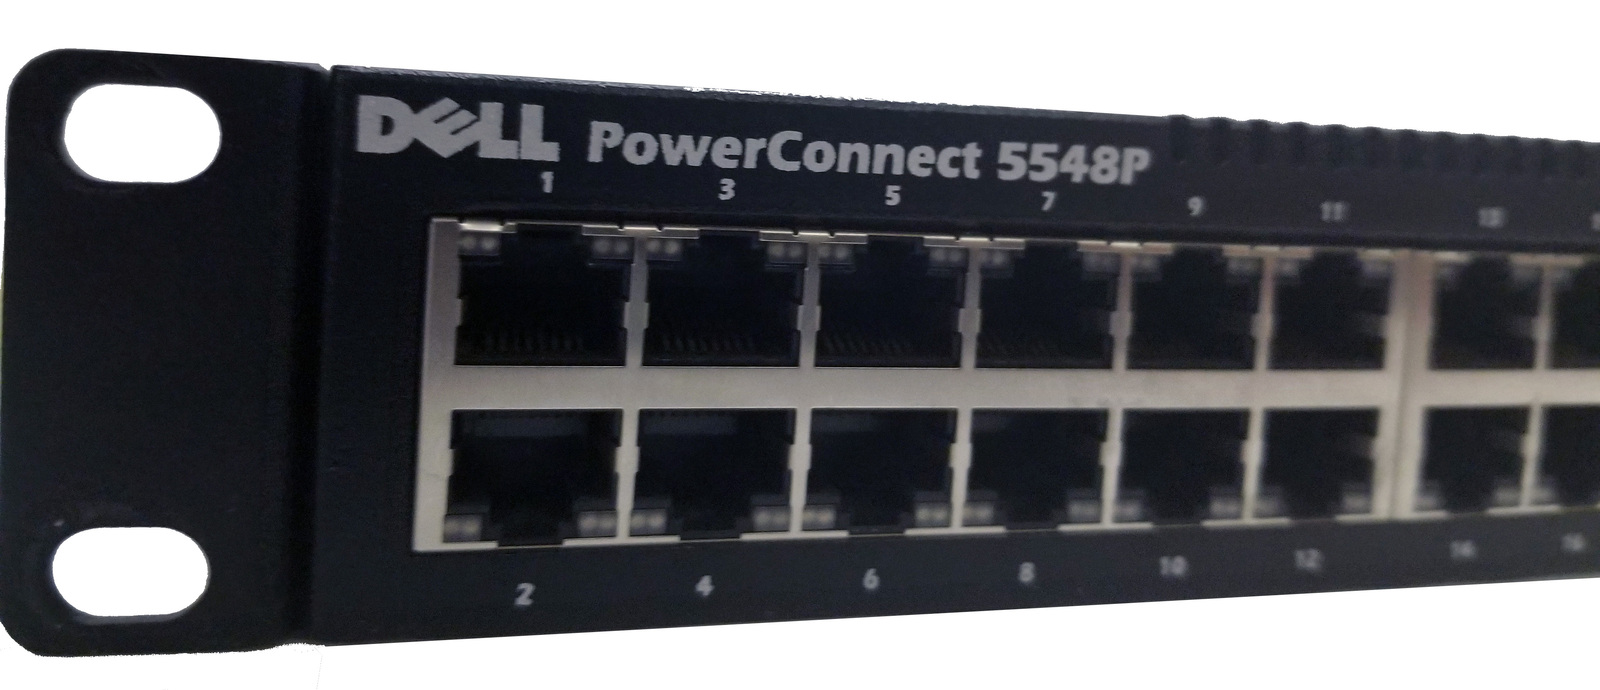 Dell PowerConnect 5548P 48 Port Gigabit Switch With Built-In Stacking Bin: 1